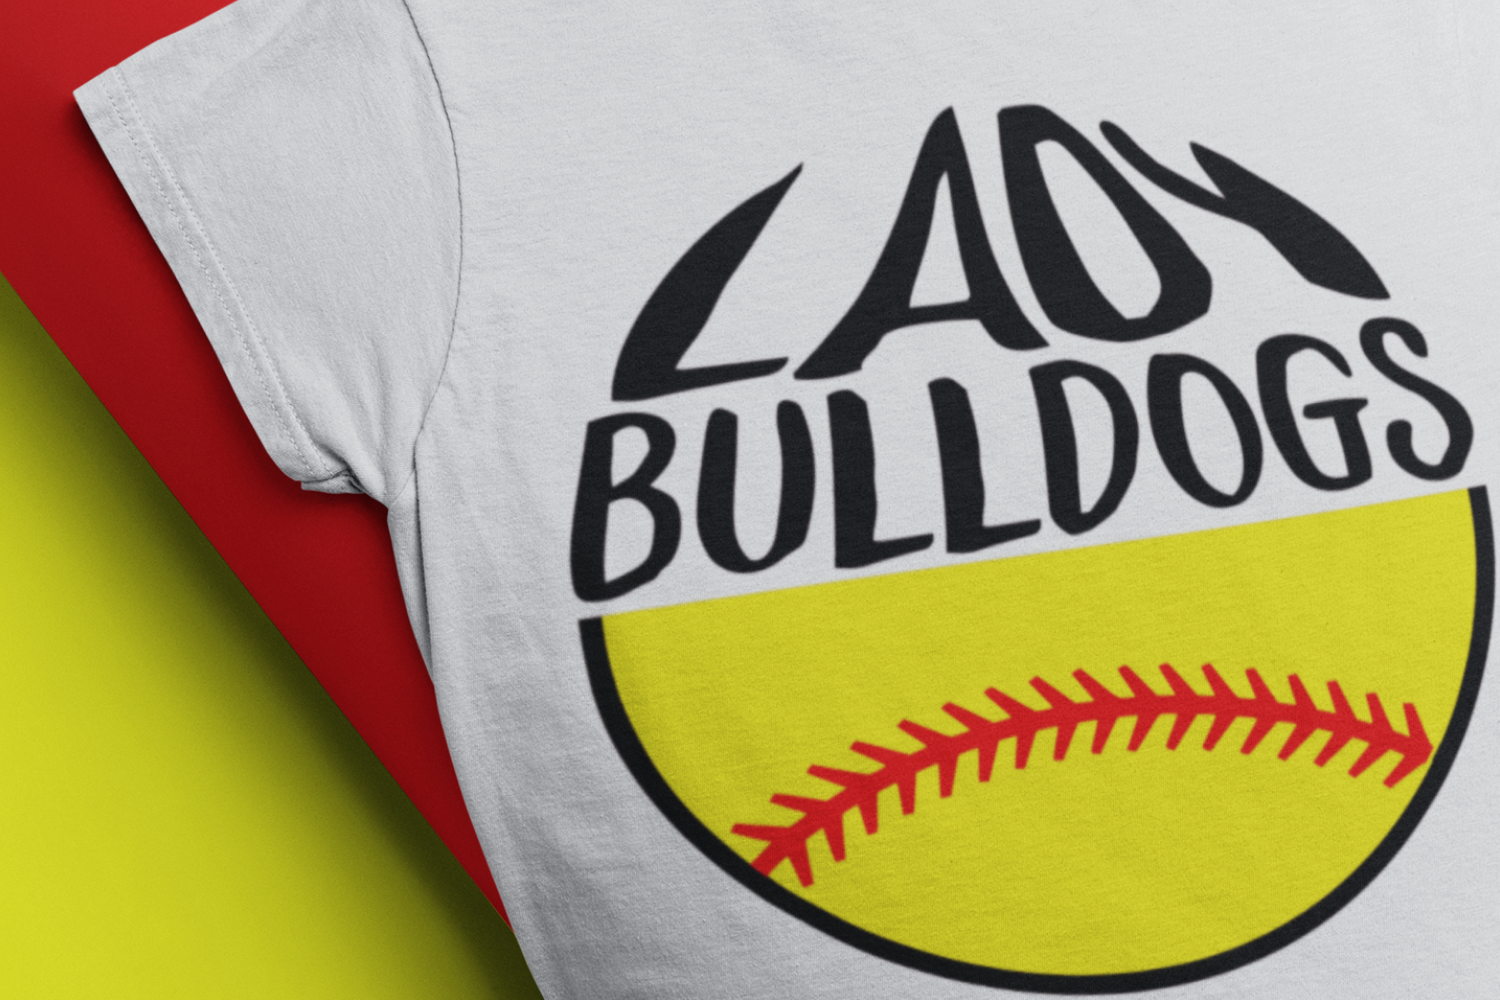 bulldogs softball svg softball mom Lady bulldogs shirt svg example image 1